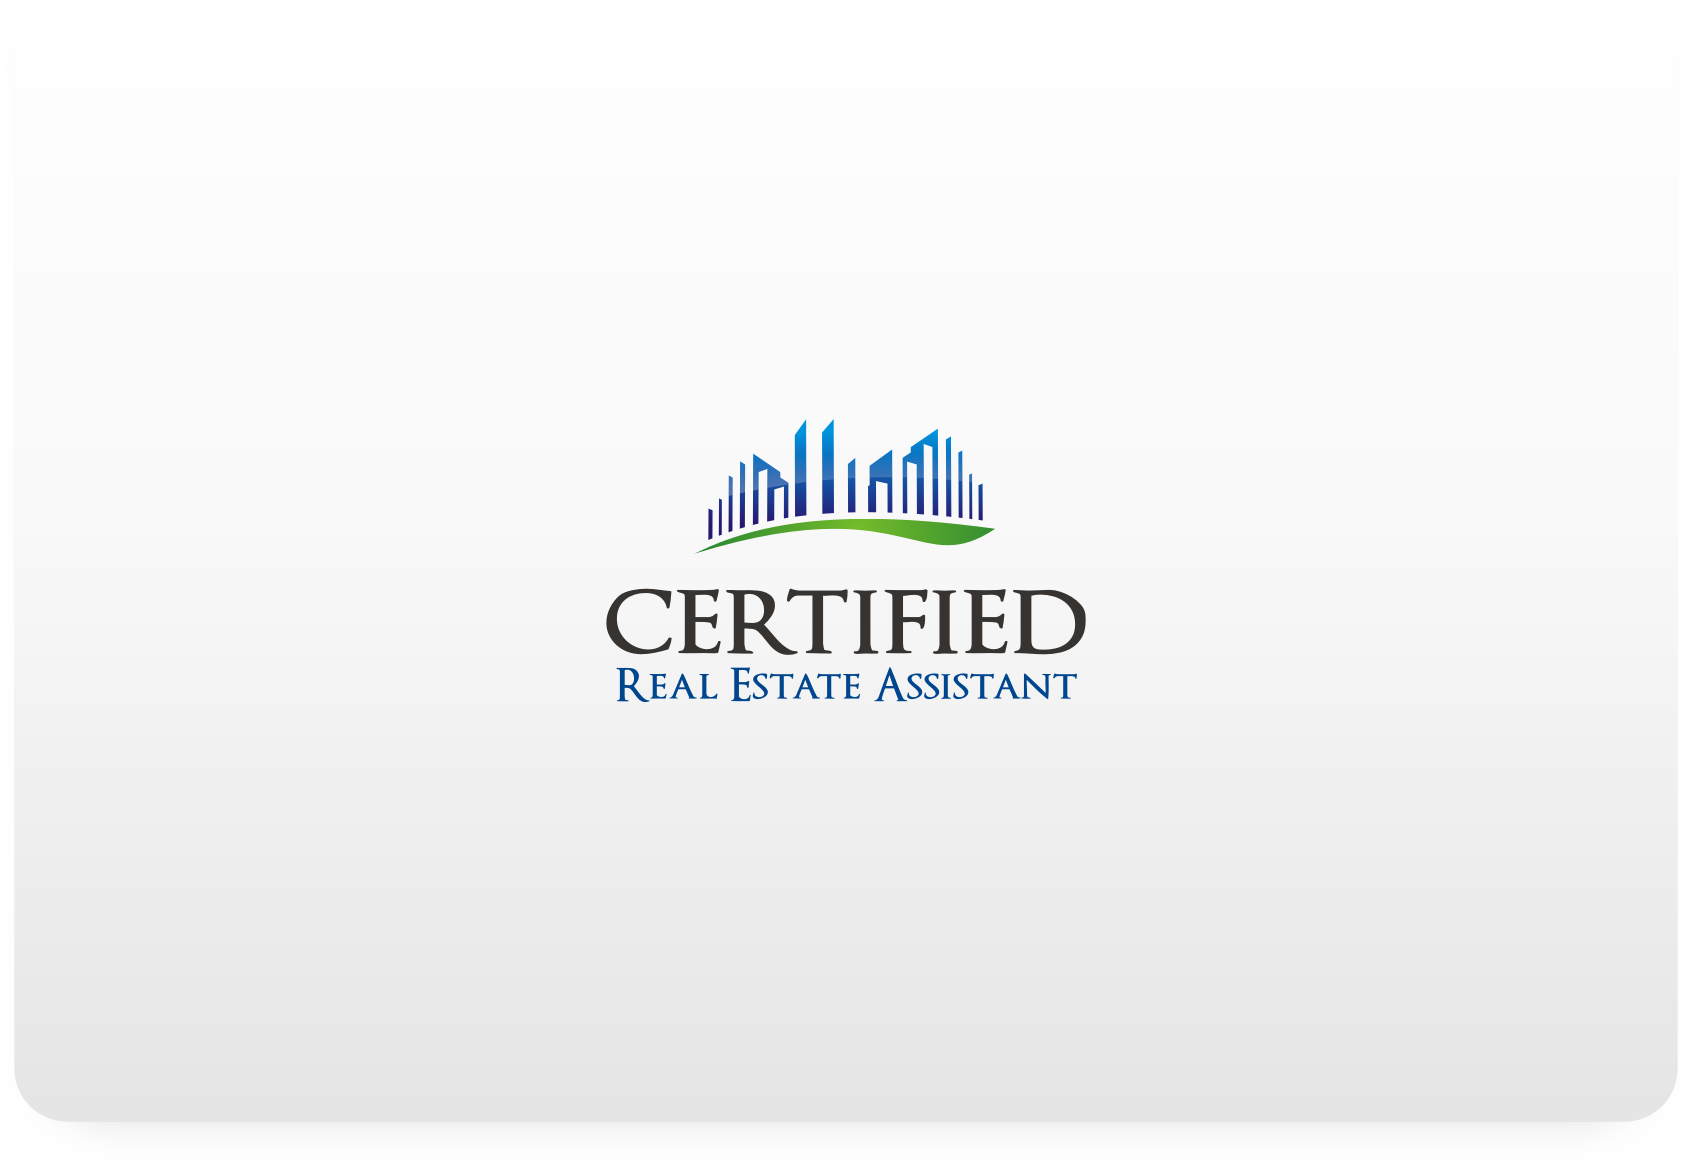 Create the next logo for Certified Real Estate Assistant